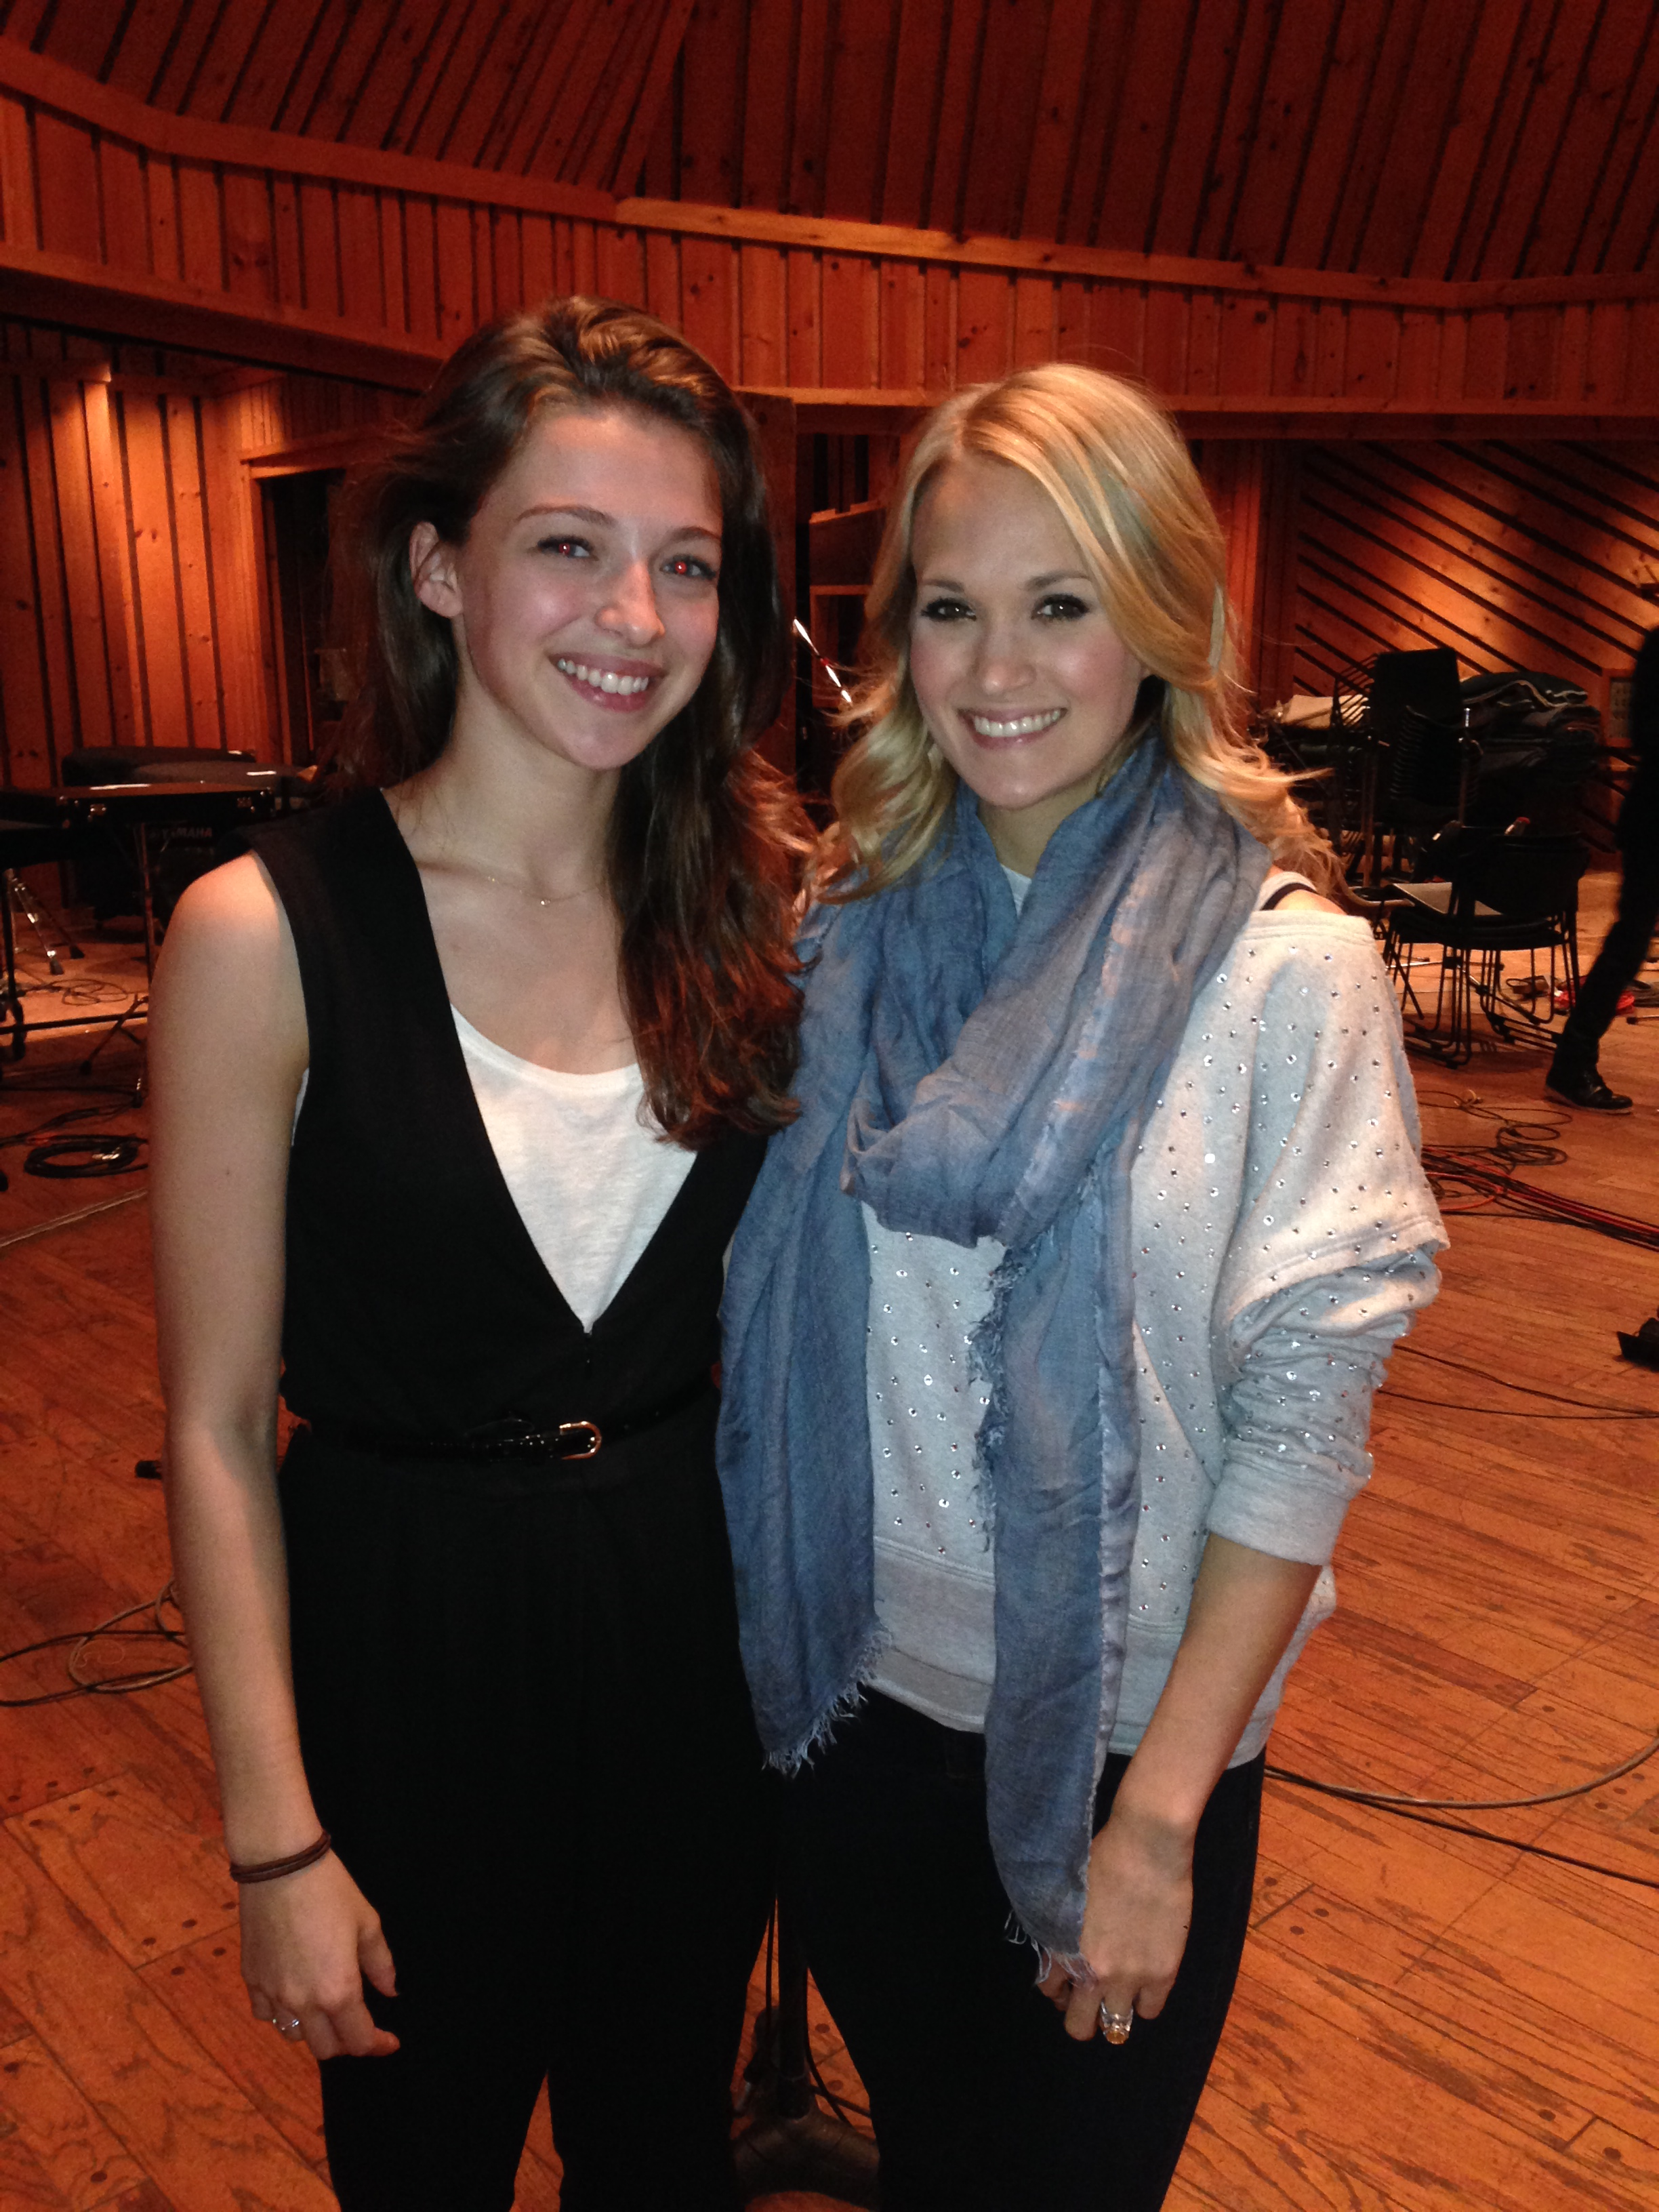 Ariane Rinehart and Carrie Underwood